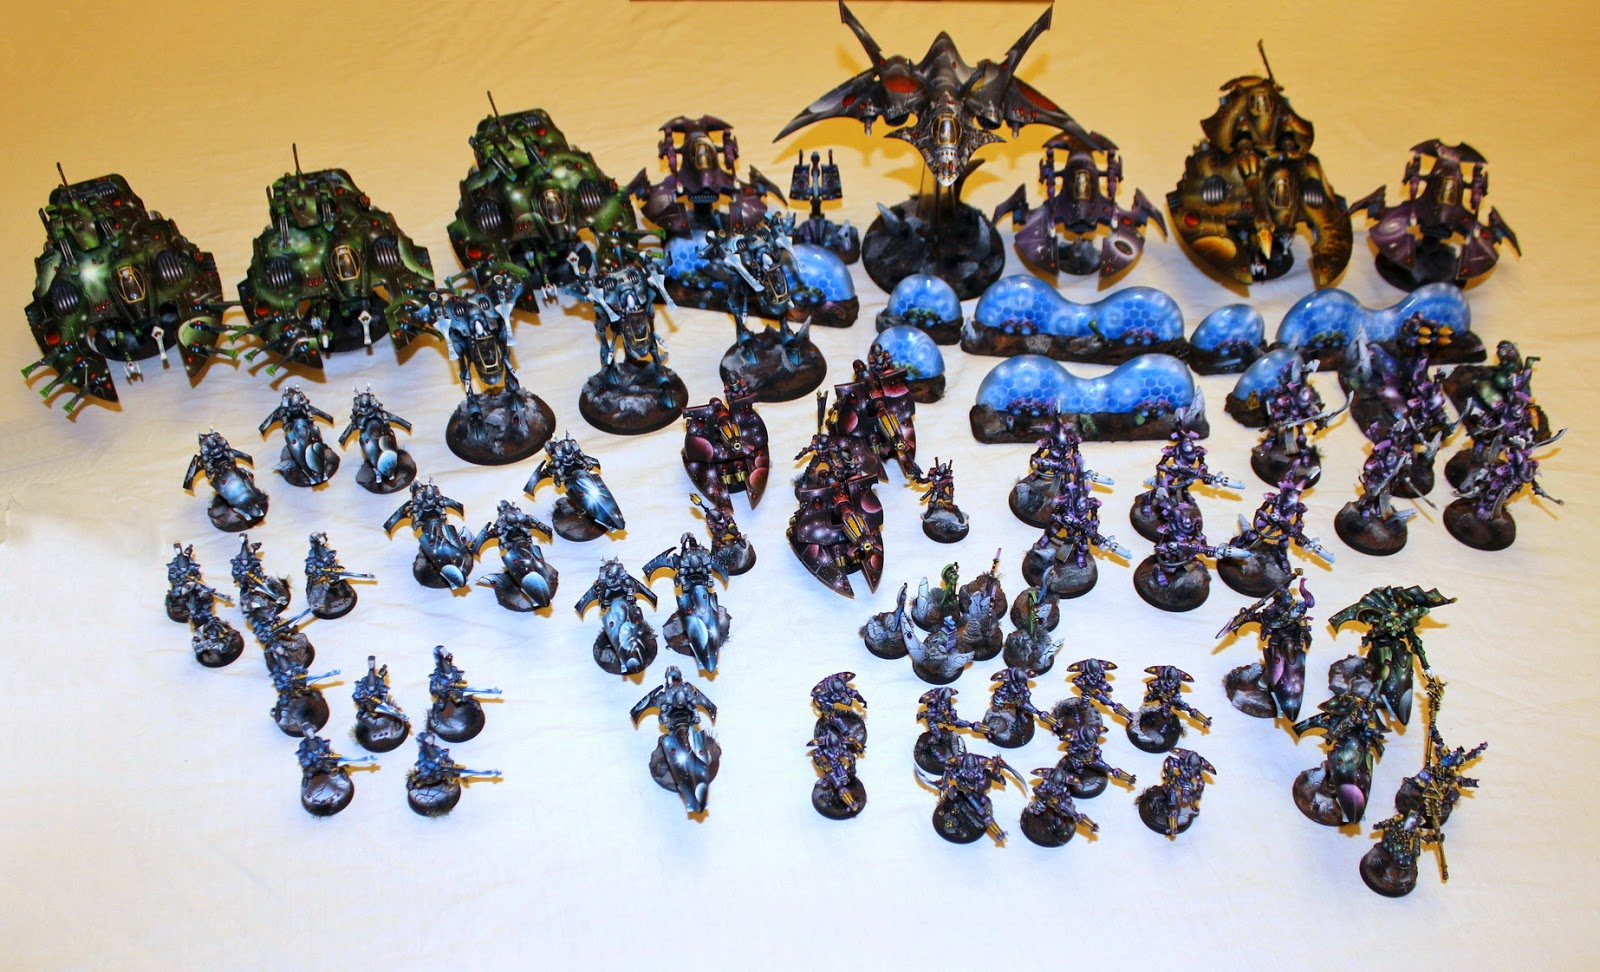 Hoperivers valley space eldar army now its taking part in massive voodoo contest bananalicios2 in army painting category im really proud of this big work and wish a lot of wins in publicscrutiny Image collections